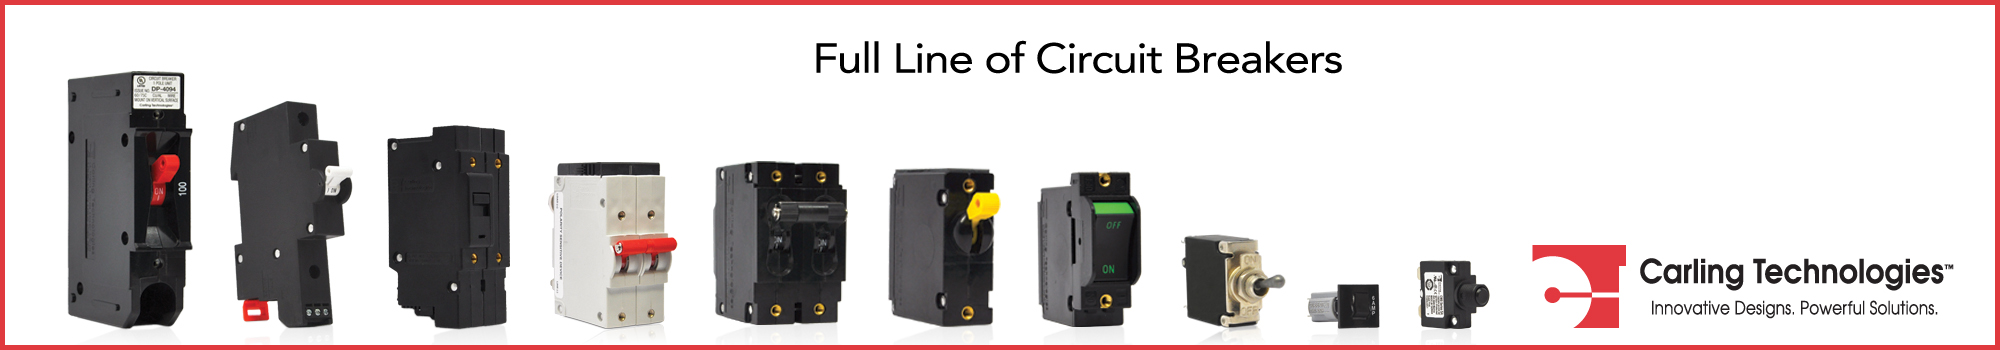 Carling circuit breakers